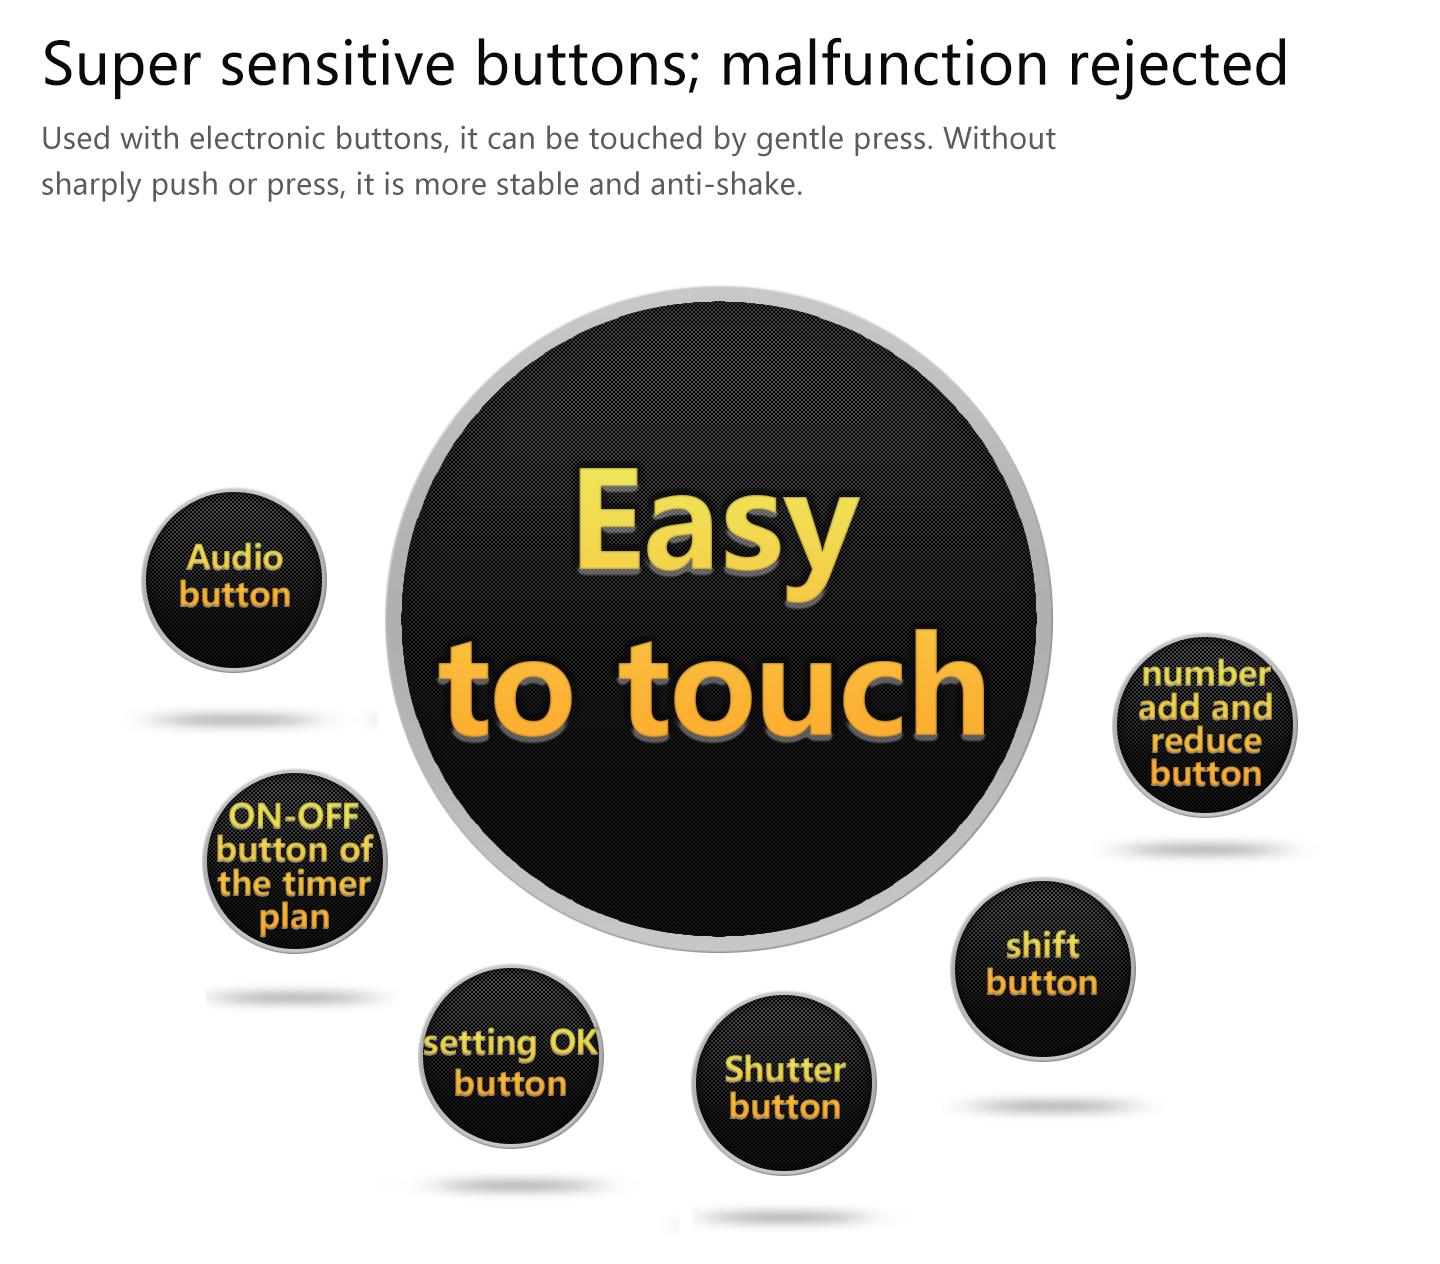 Suer sensitive buttons; malfunction rejected